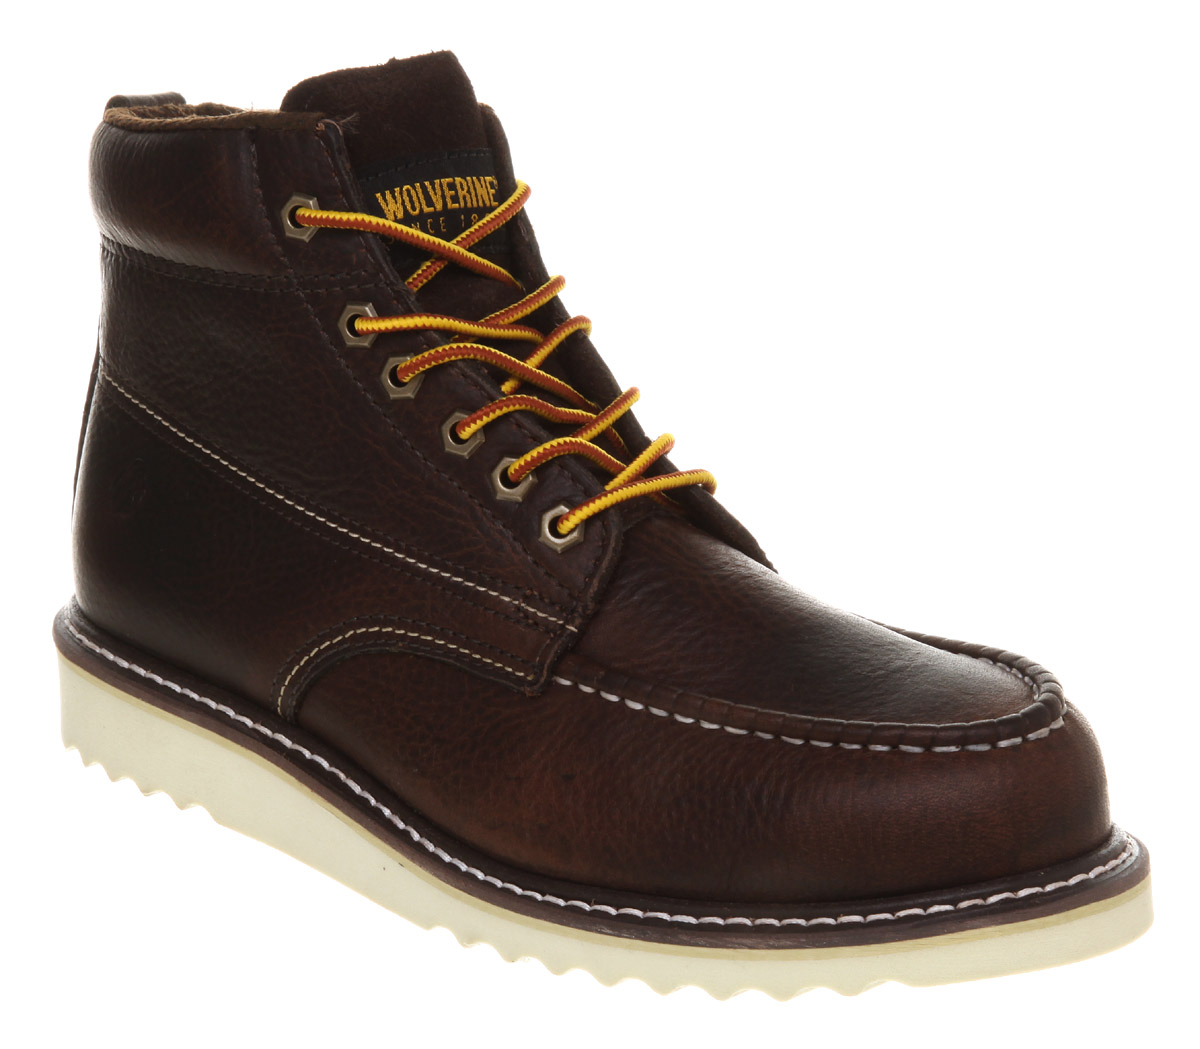 Mens-Office-Apprentice-Wedge-Boot-Choc-Leather-Boots